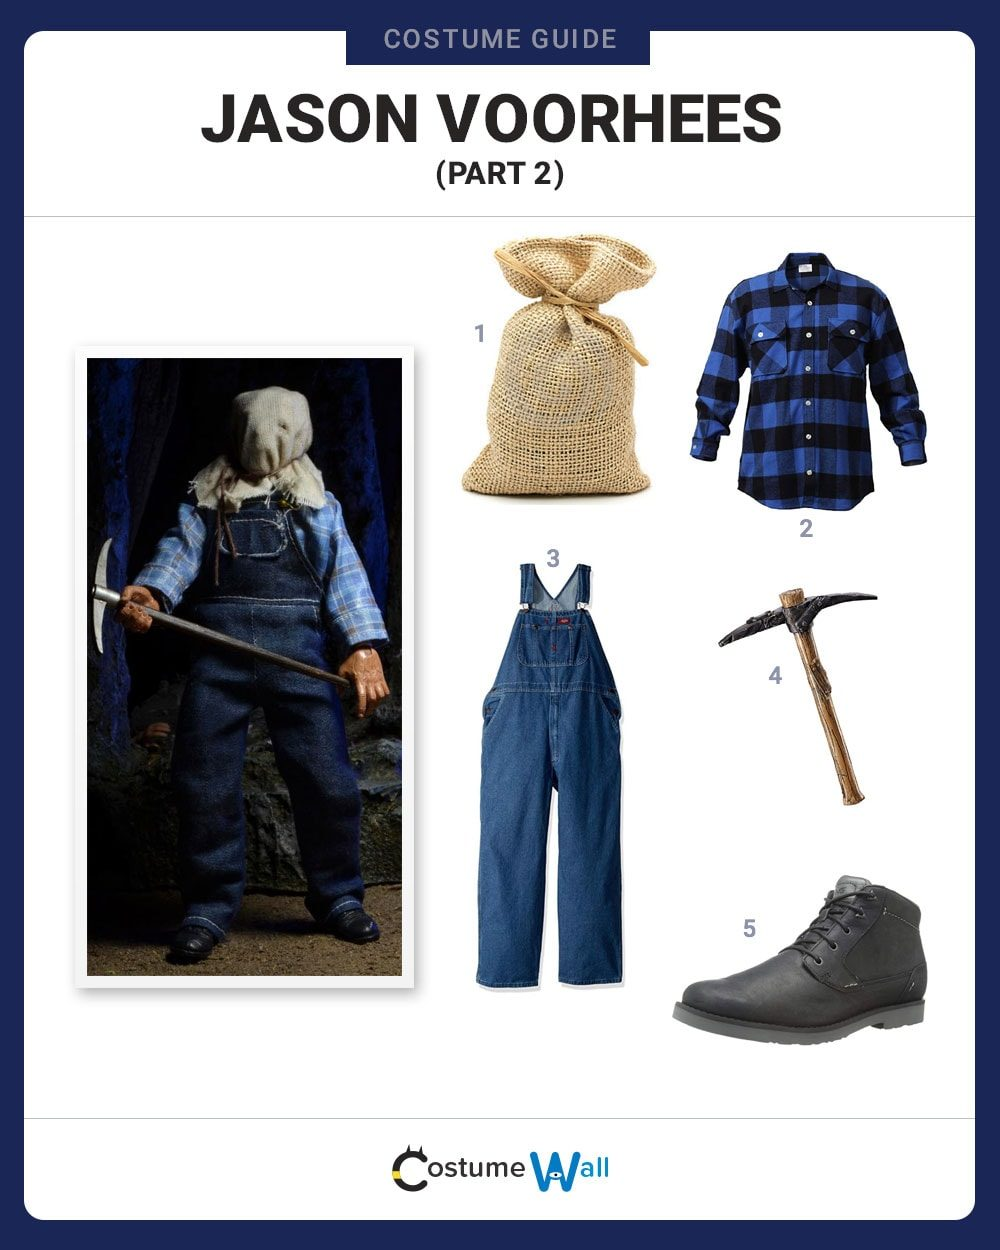 dress like jason voorhees (part 2) costume | halloween and cosplay